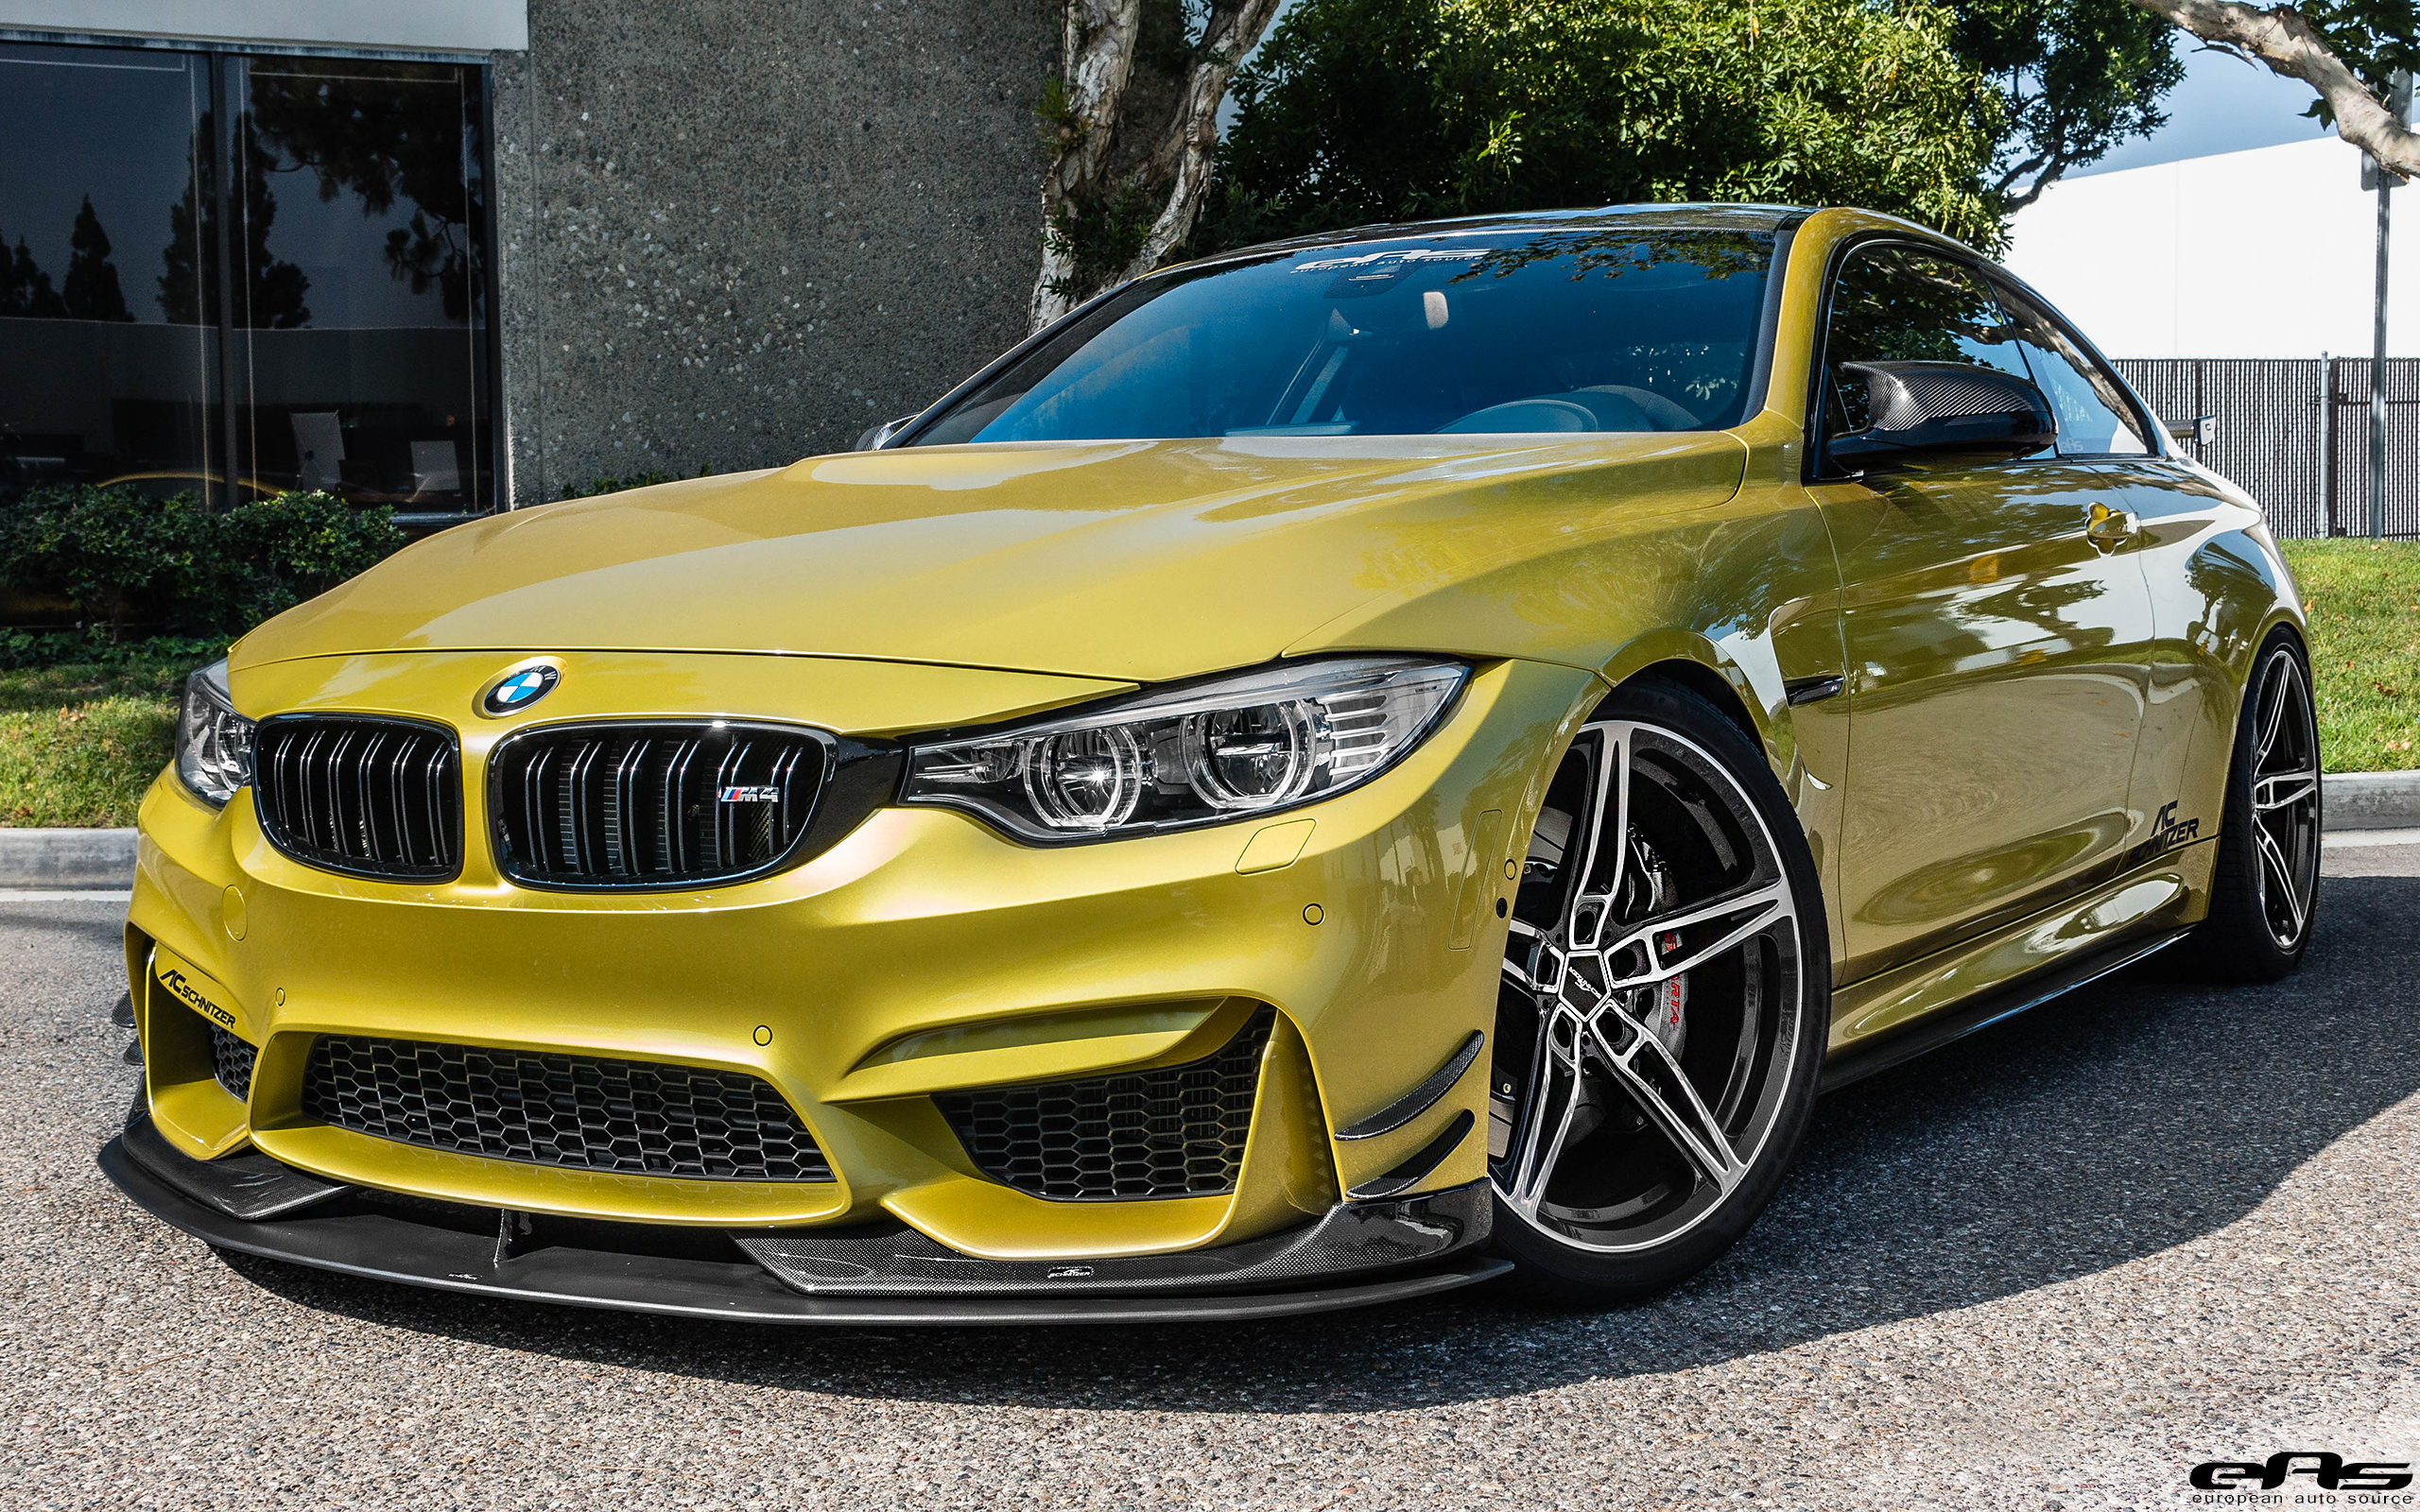 European auto source bmw mercedes benz performance parts ac schnitzer is a well respected name in the bmw tuning world for 25 years ac schnitzer has opened the door to superior vehicle motorsport technology for vanachro Images